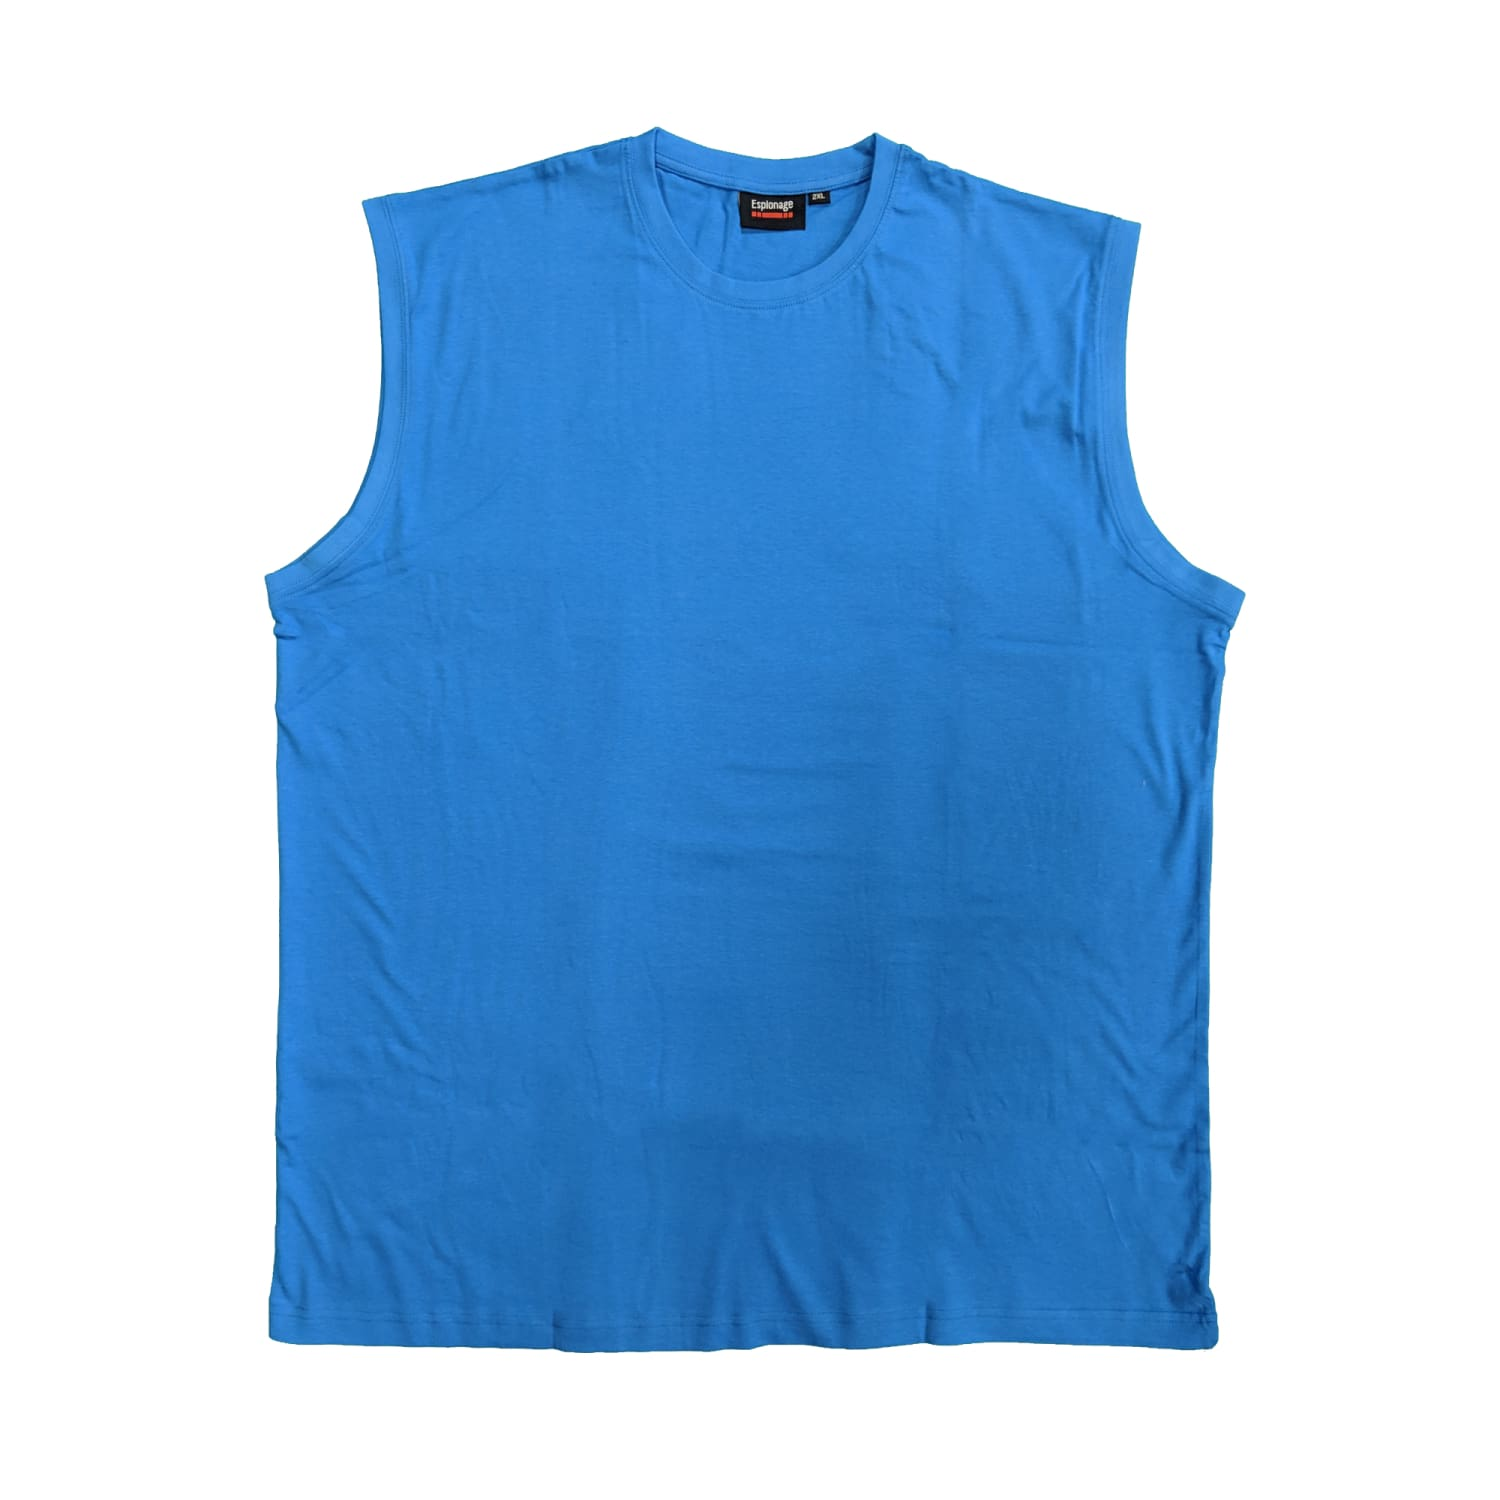 Espionage Sleeveless Tee - T113 - Atlantic Blue 1